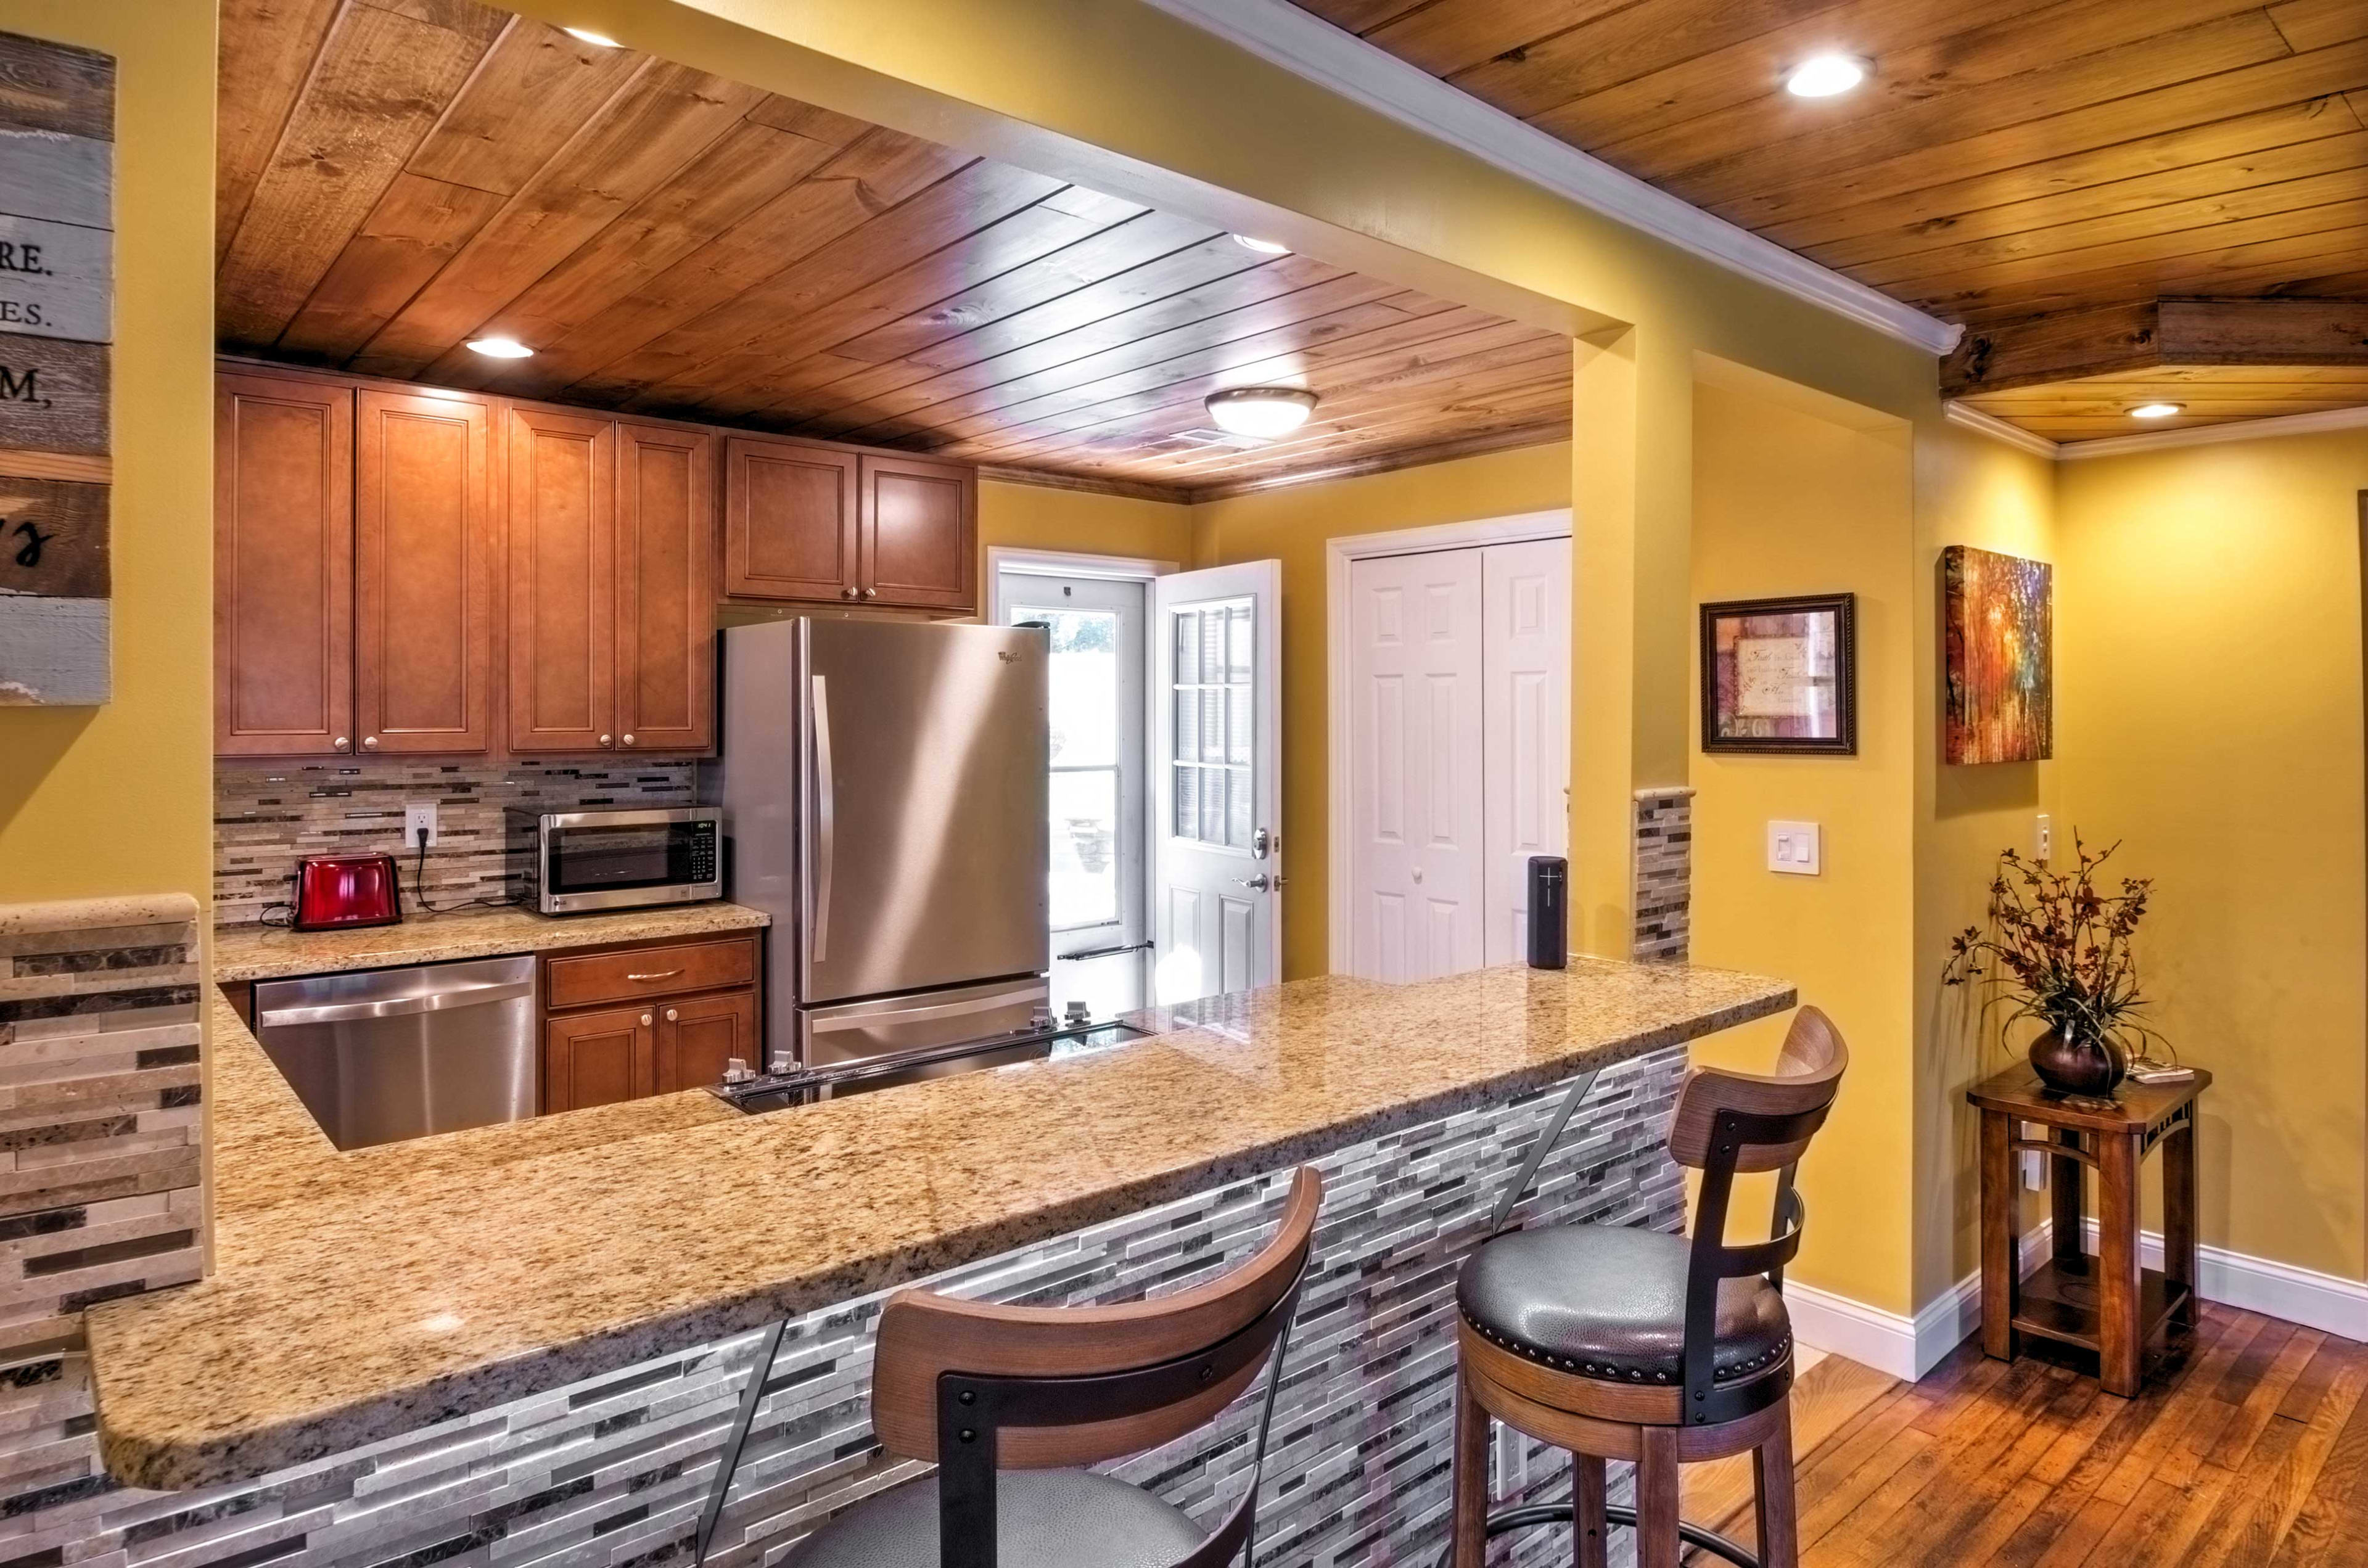 The updated kitchen features stainless steel appliances, beautiful wood cabinets and breakfast bar.